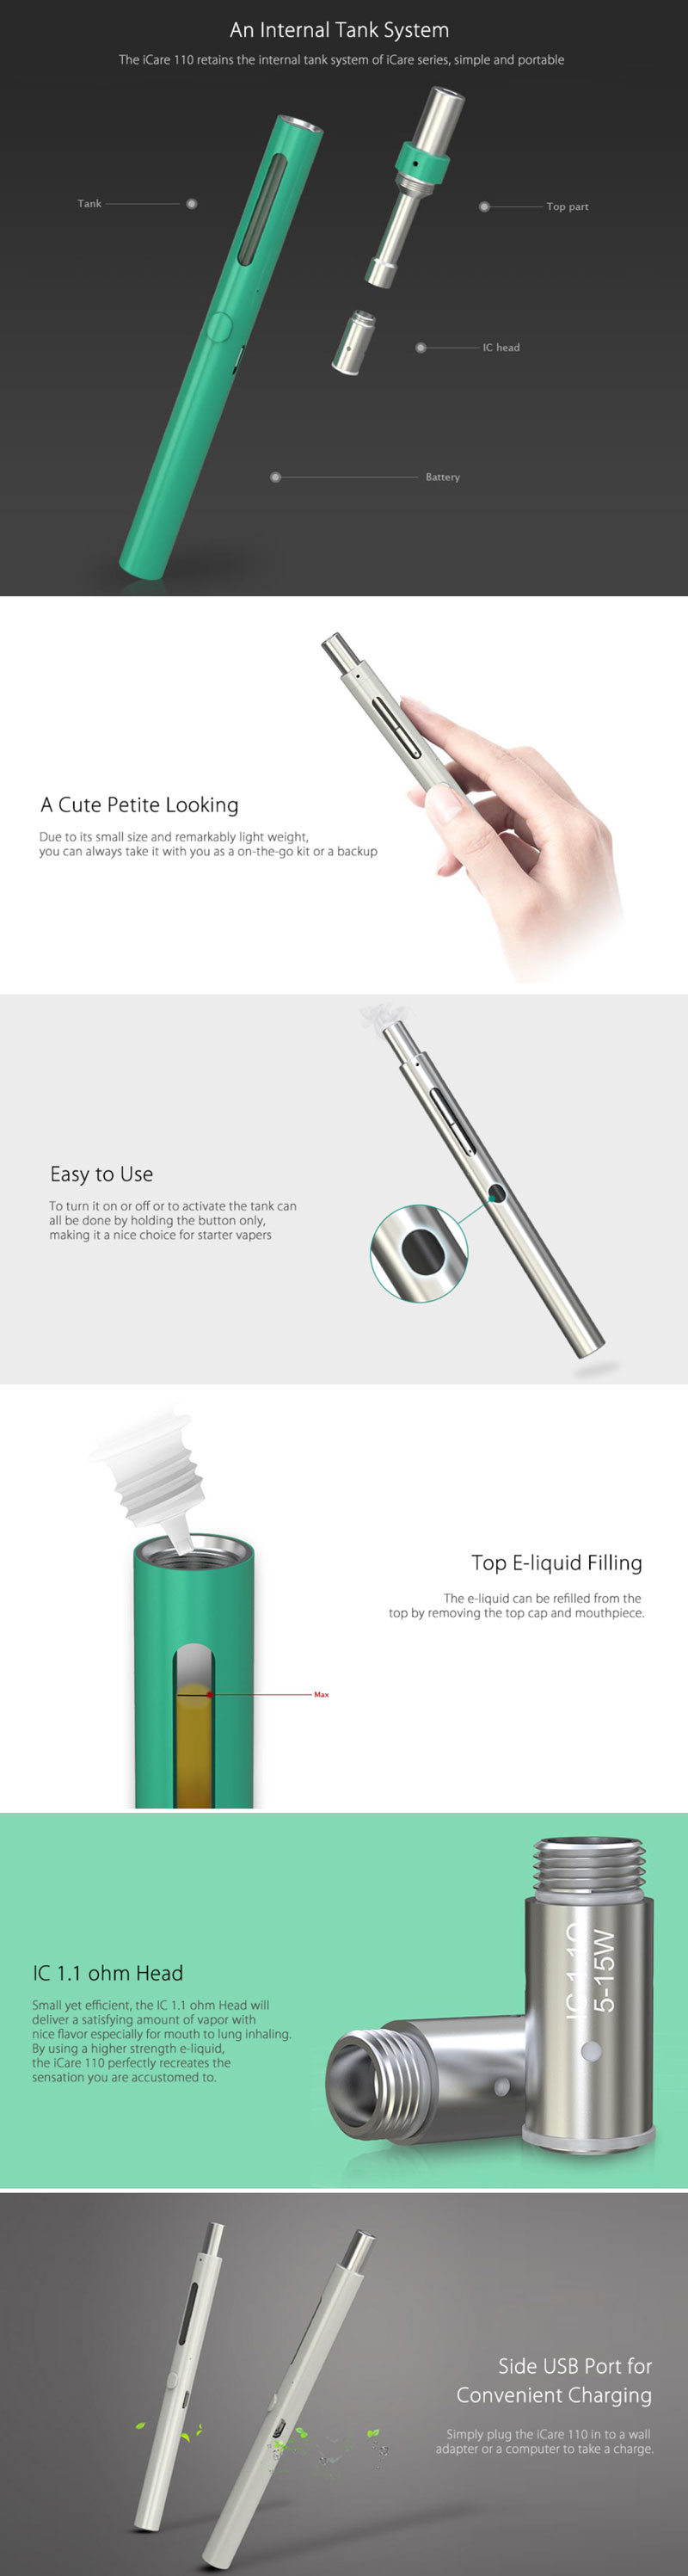 Eleaf iCare 110_Features